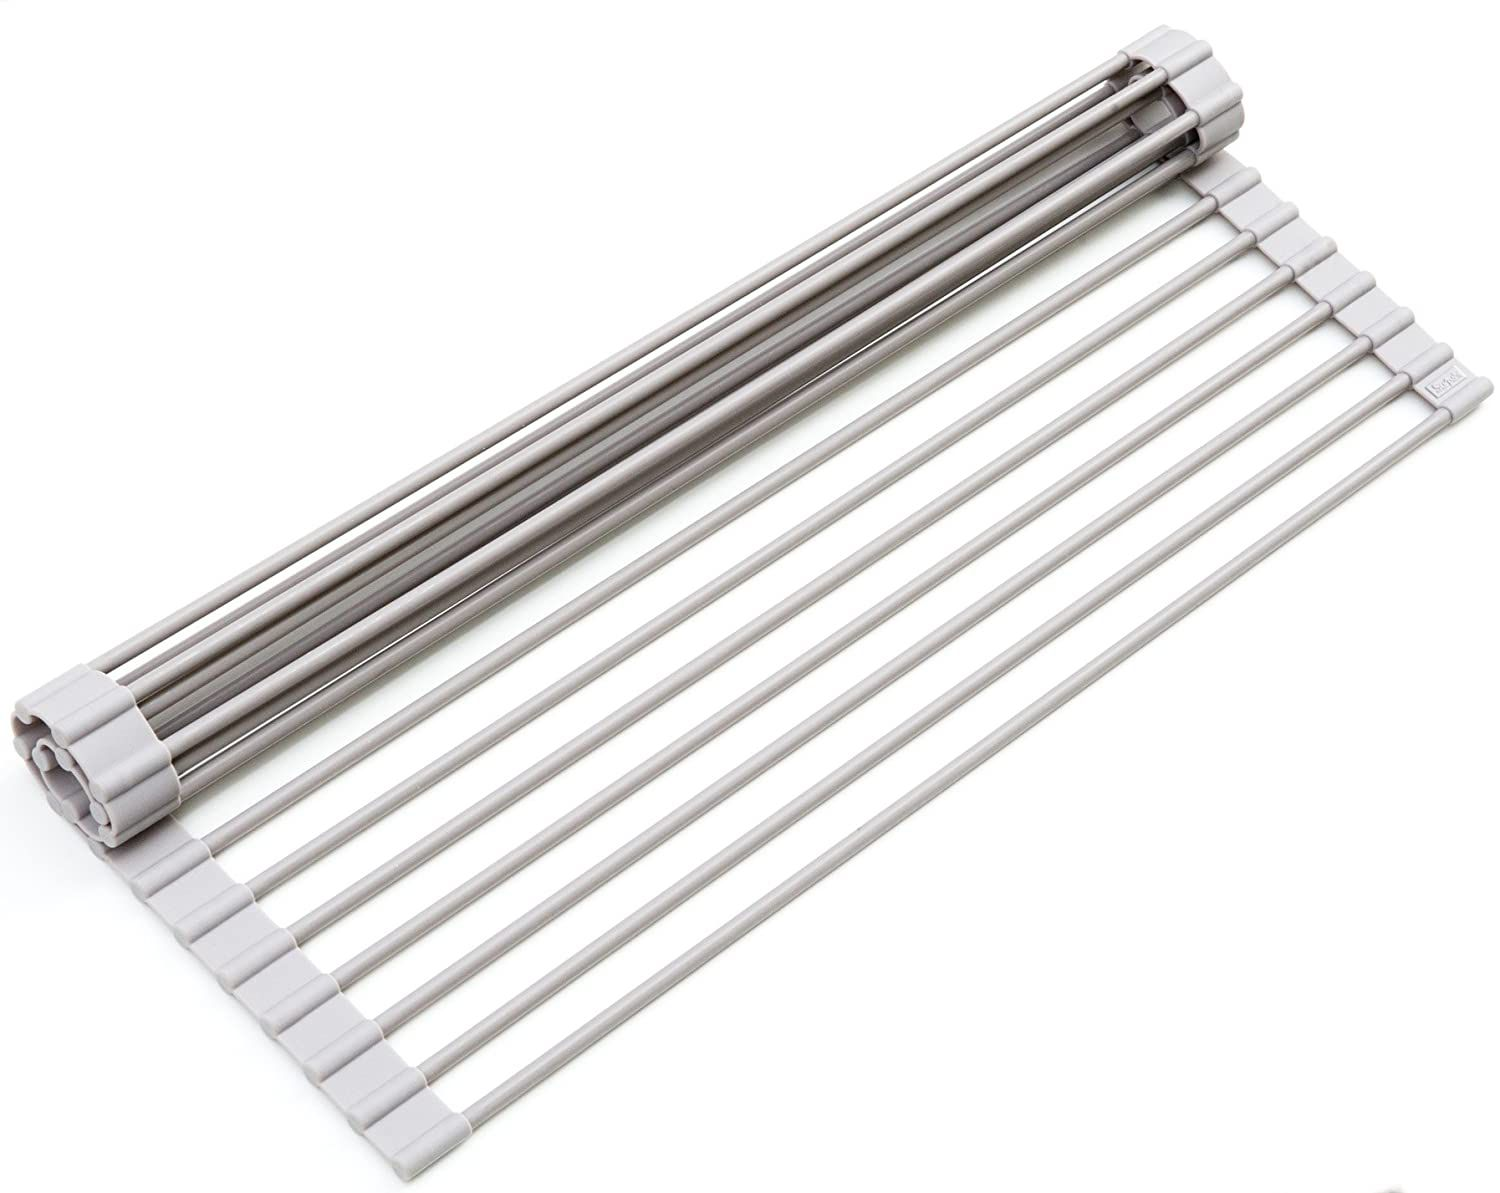 Surpahs Over-the-Sink Multipurpose Roll-Up Dish Drying